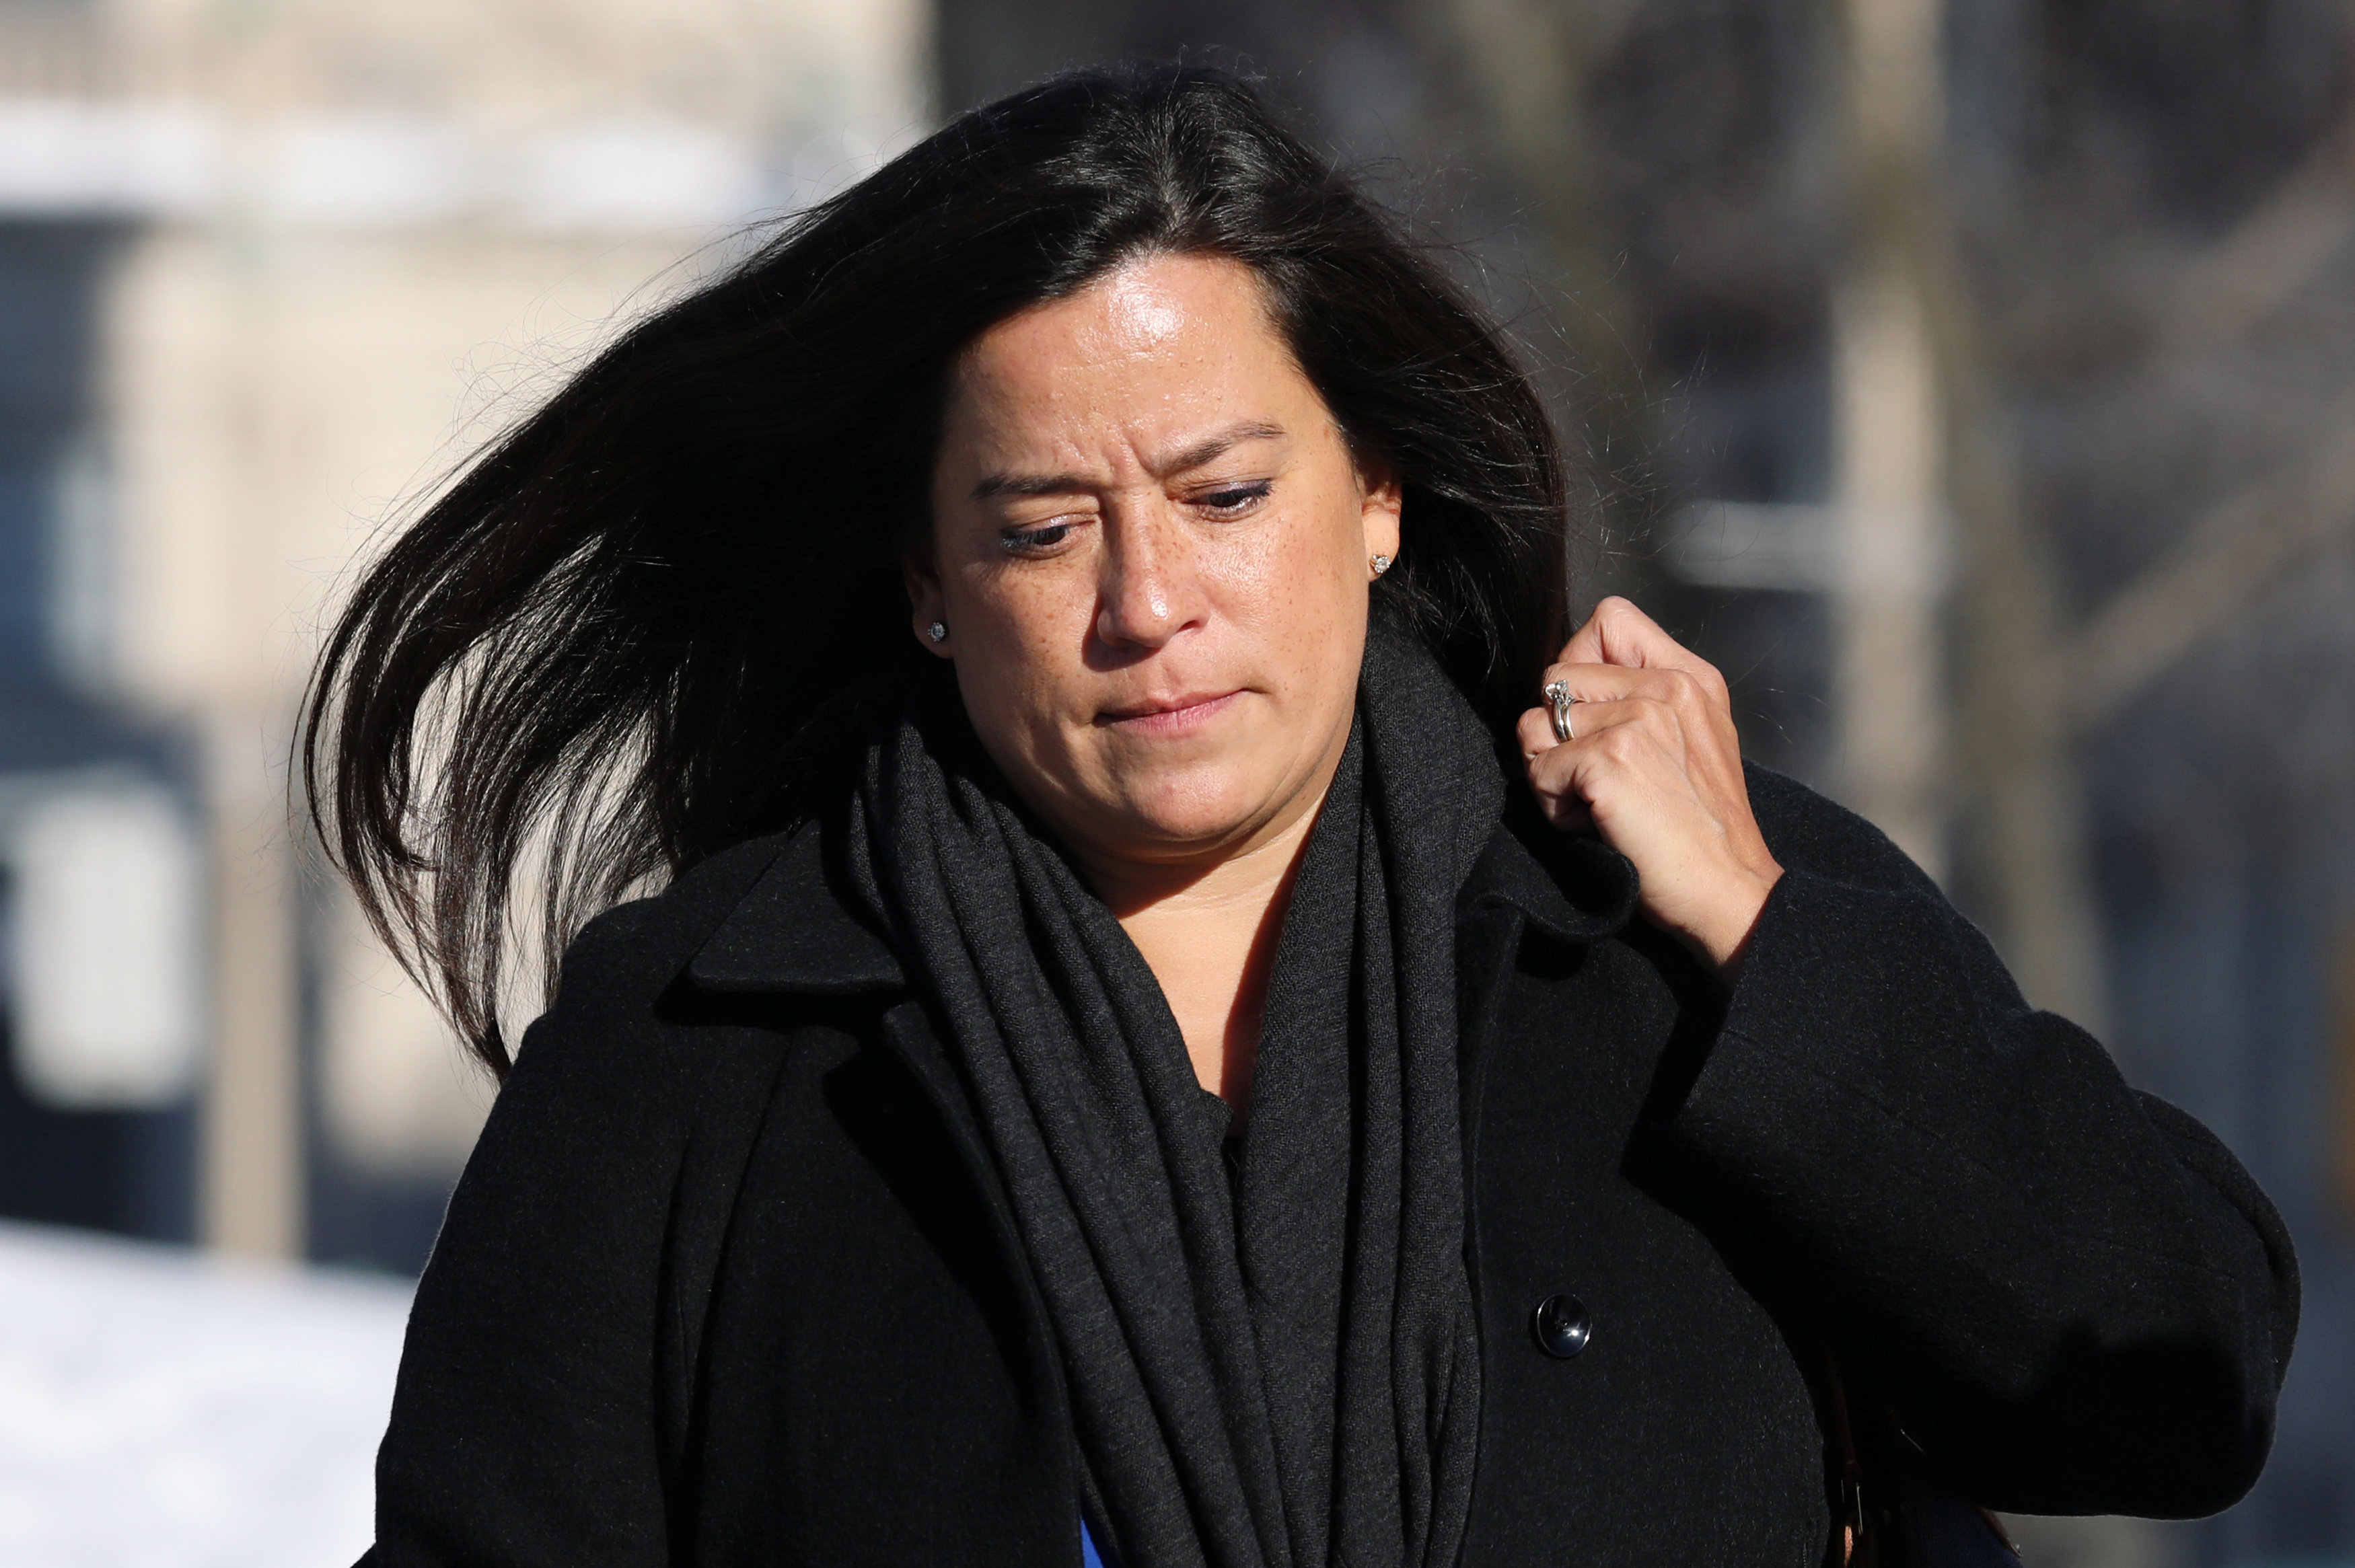 Jody Wilson-Raybould, former Canadian justice minister, walks on Parliament Hill in Ottawa, Ontario, Canada February 19, 2019